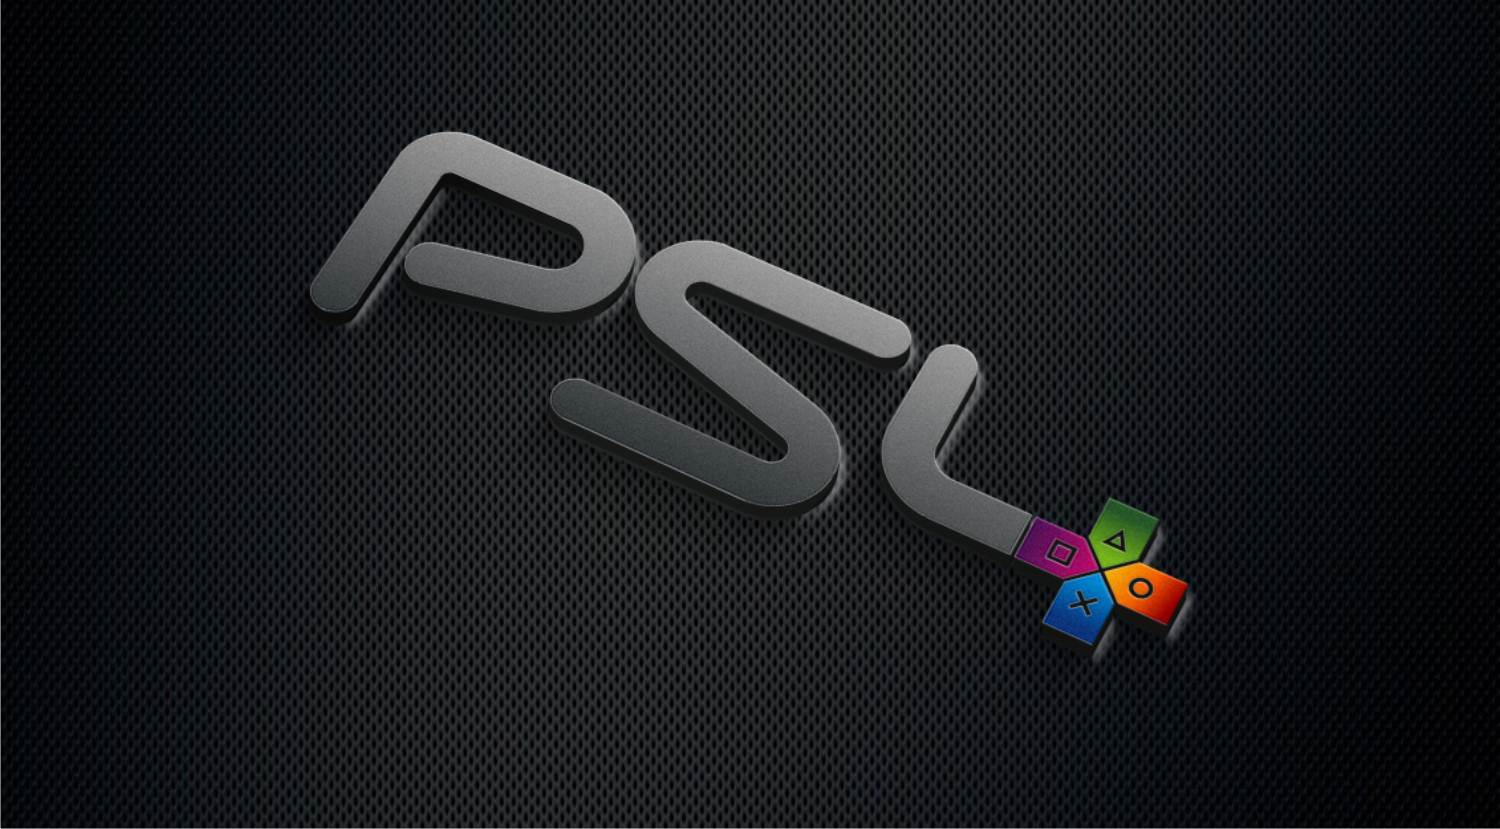 image - playstation-4-wallpapers-ps4-hd-wallpapers-خلفيات-壁紙-fonds